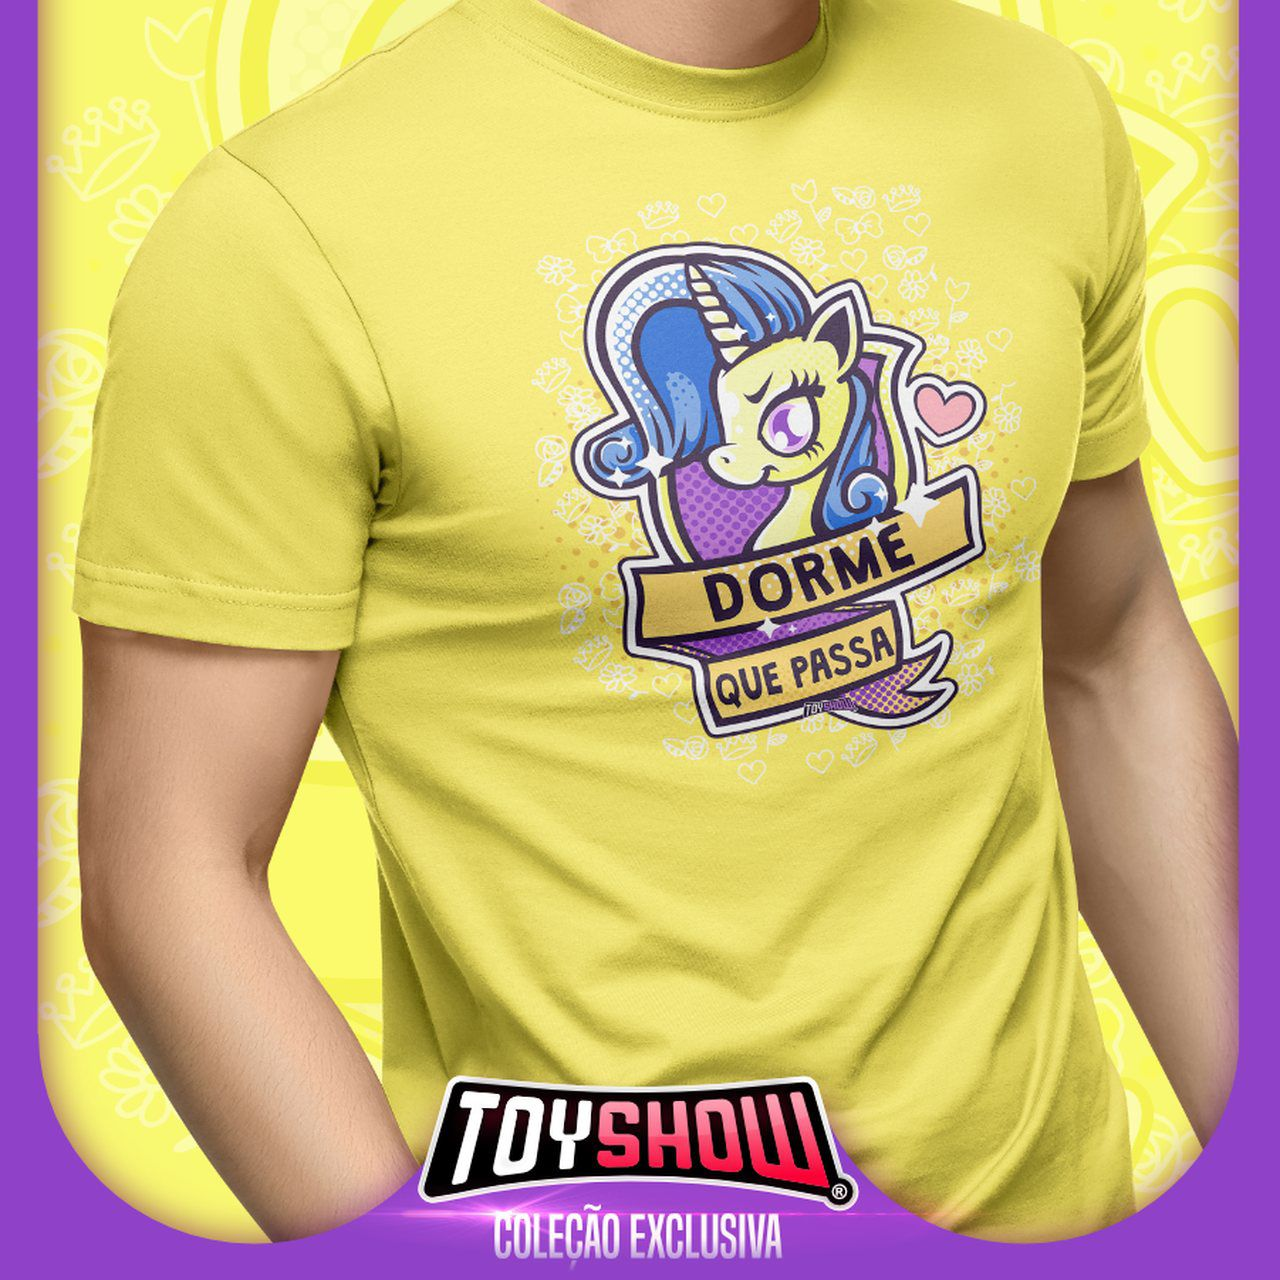 "Camiseta PowerFun (Unicórnio) ""Dorme Que Passa"" - Exclusiva Toyshow"